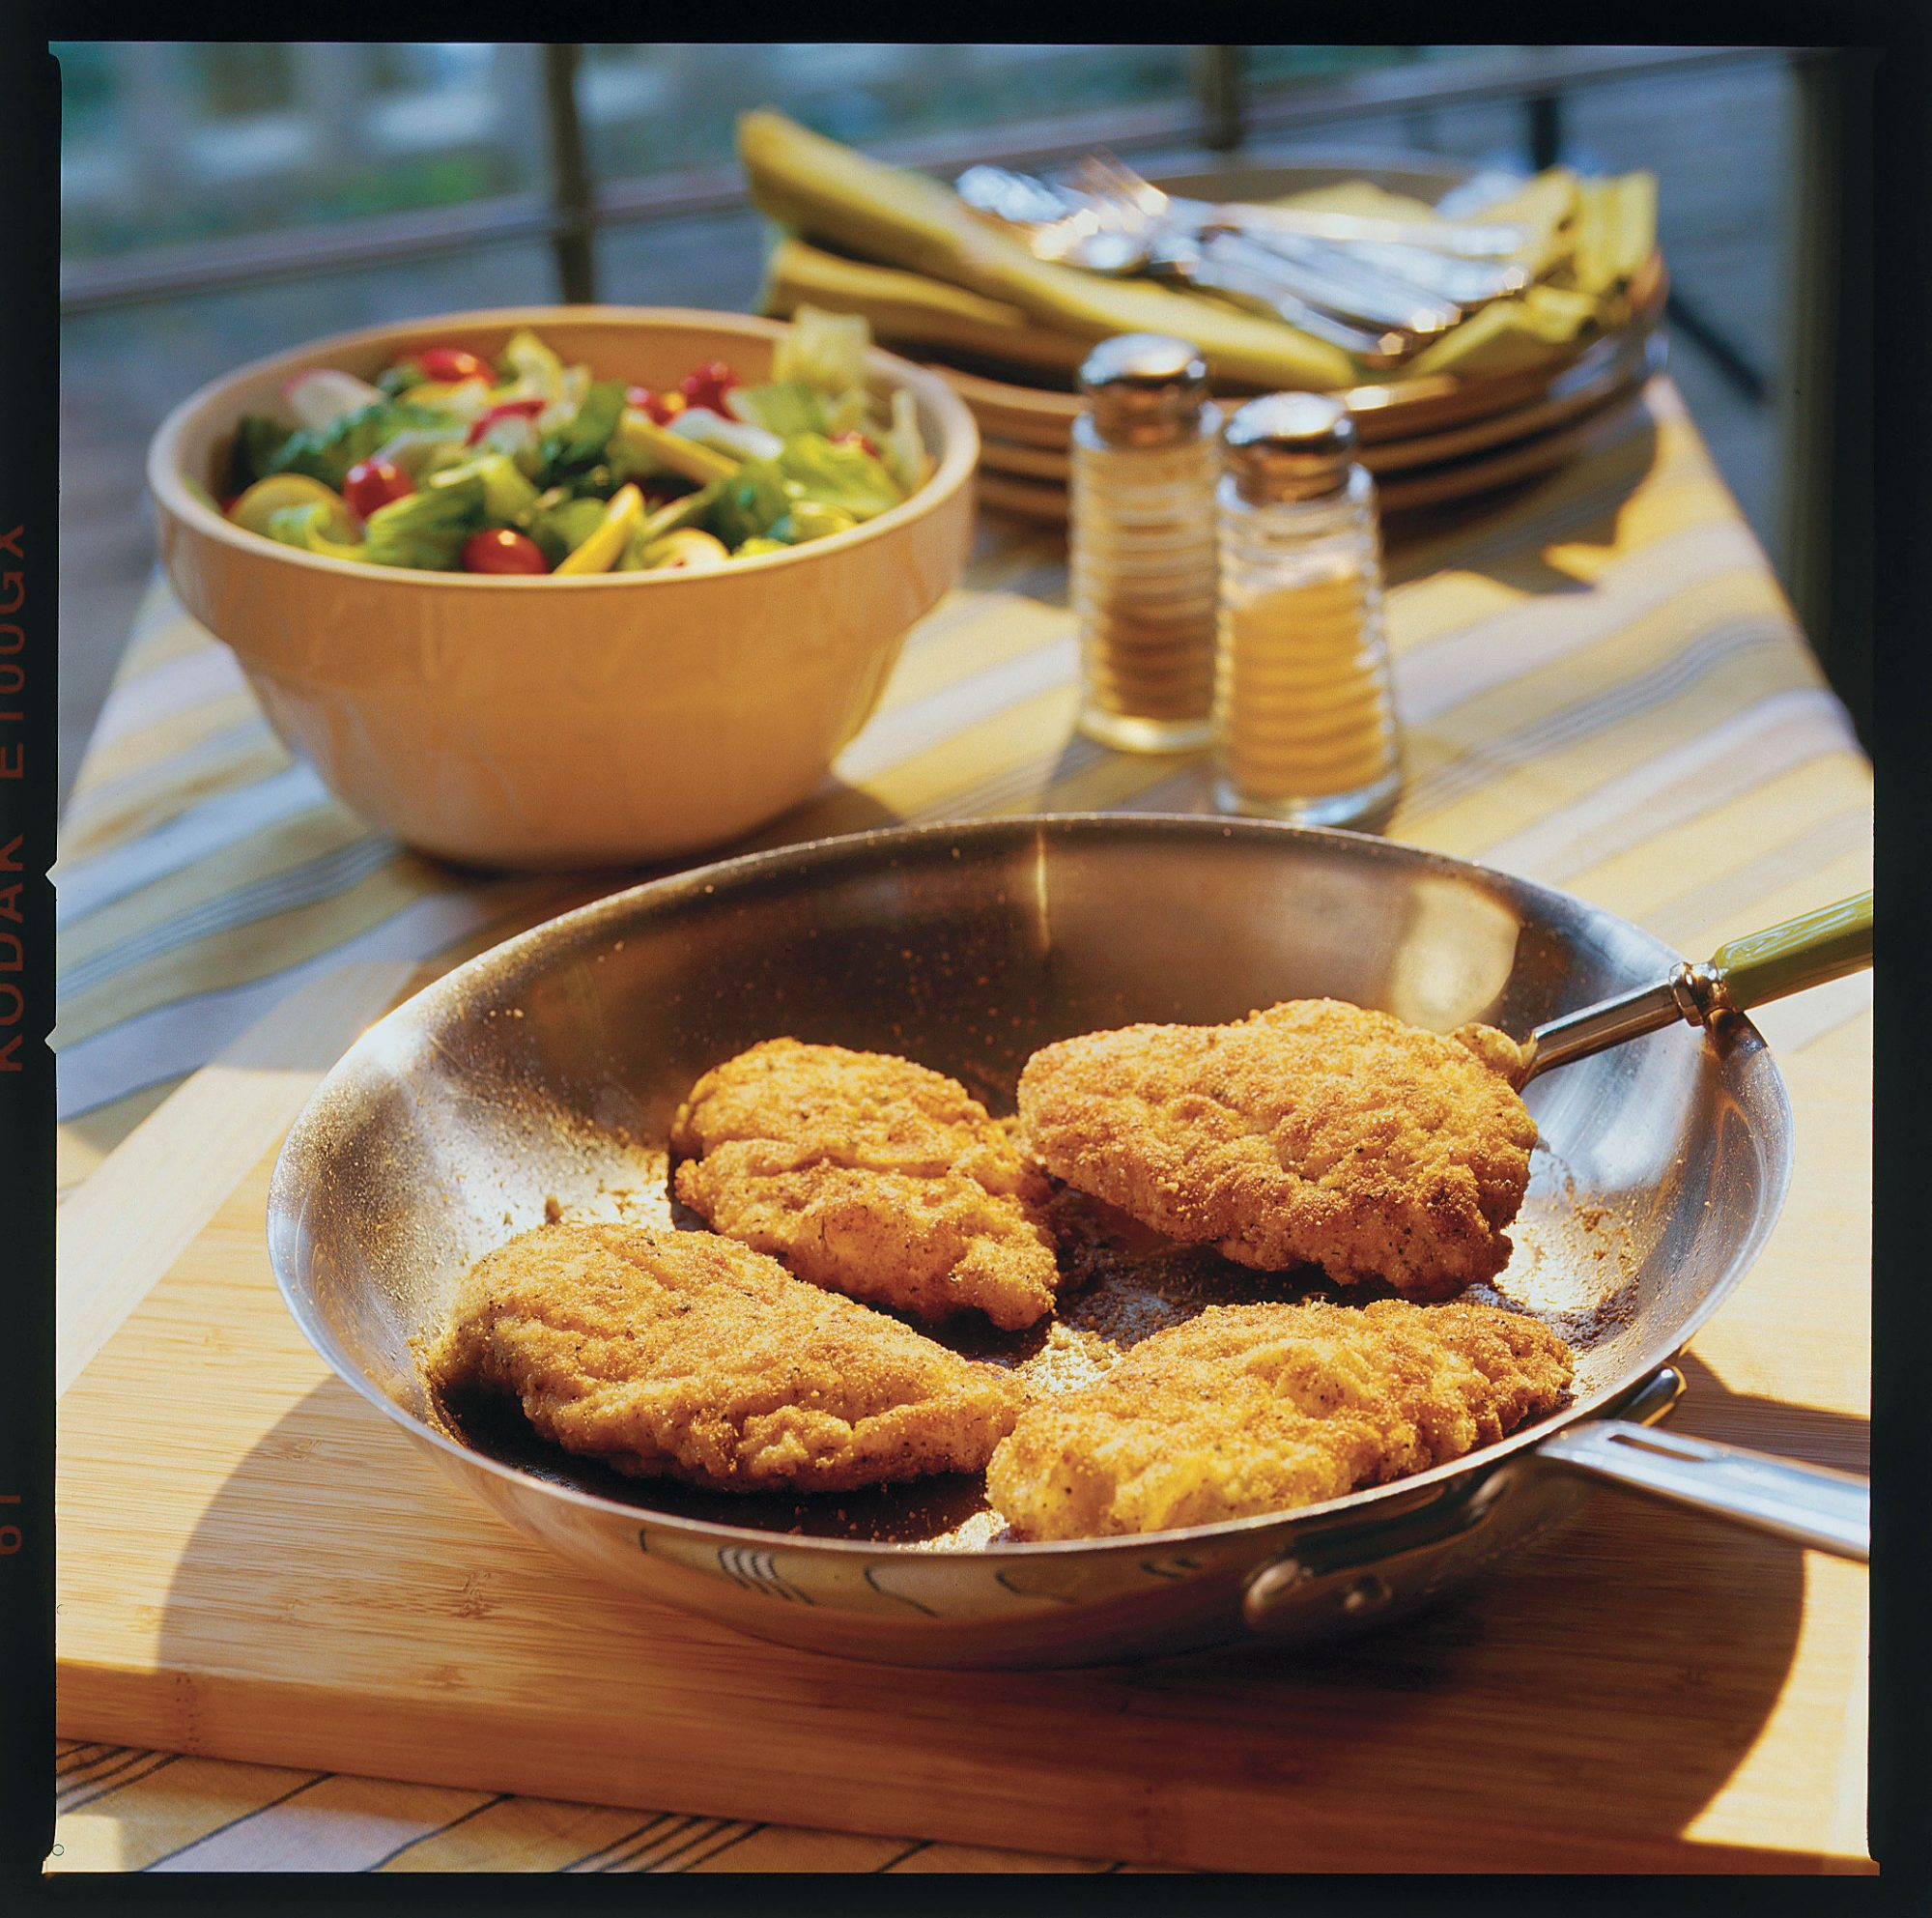 Quick and Easy Southern Recipes: Crunchy Pan-Fried Chicken